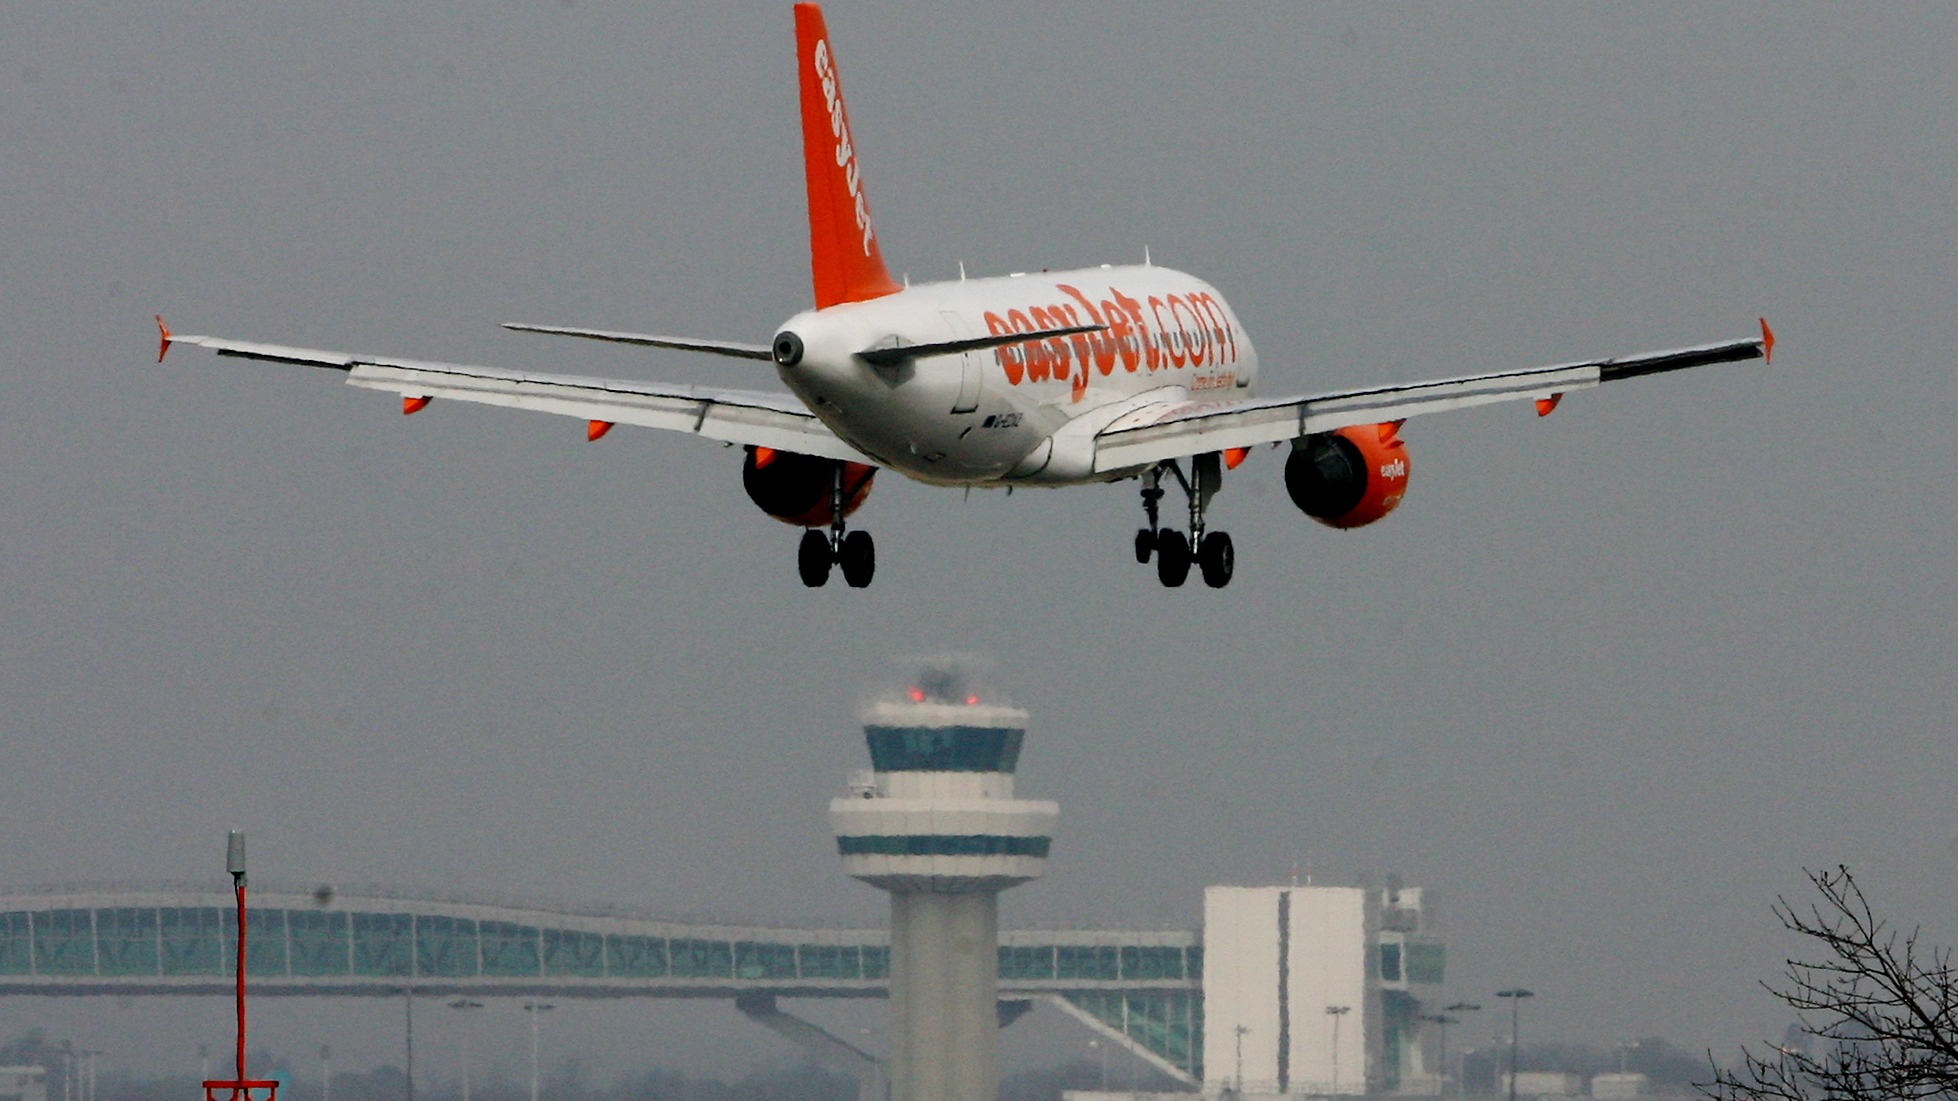 flights to milan from gatwick - photo#15